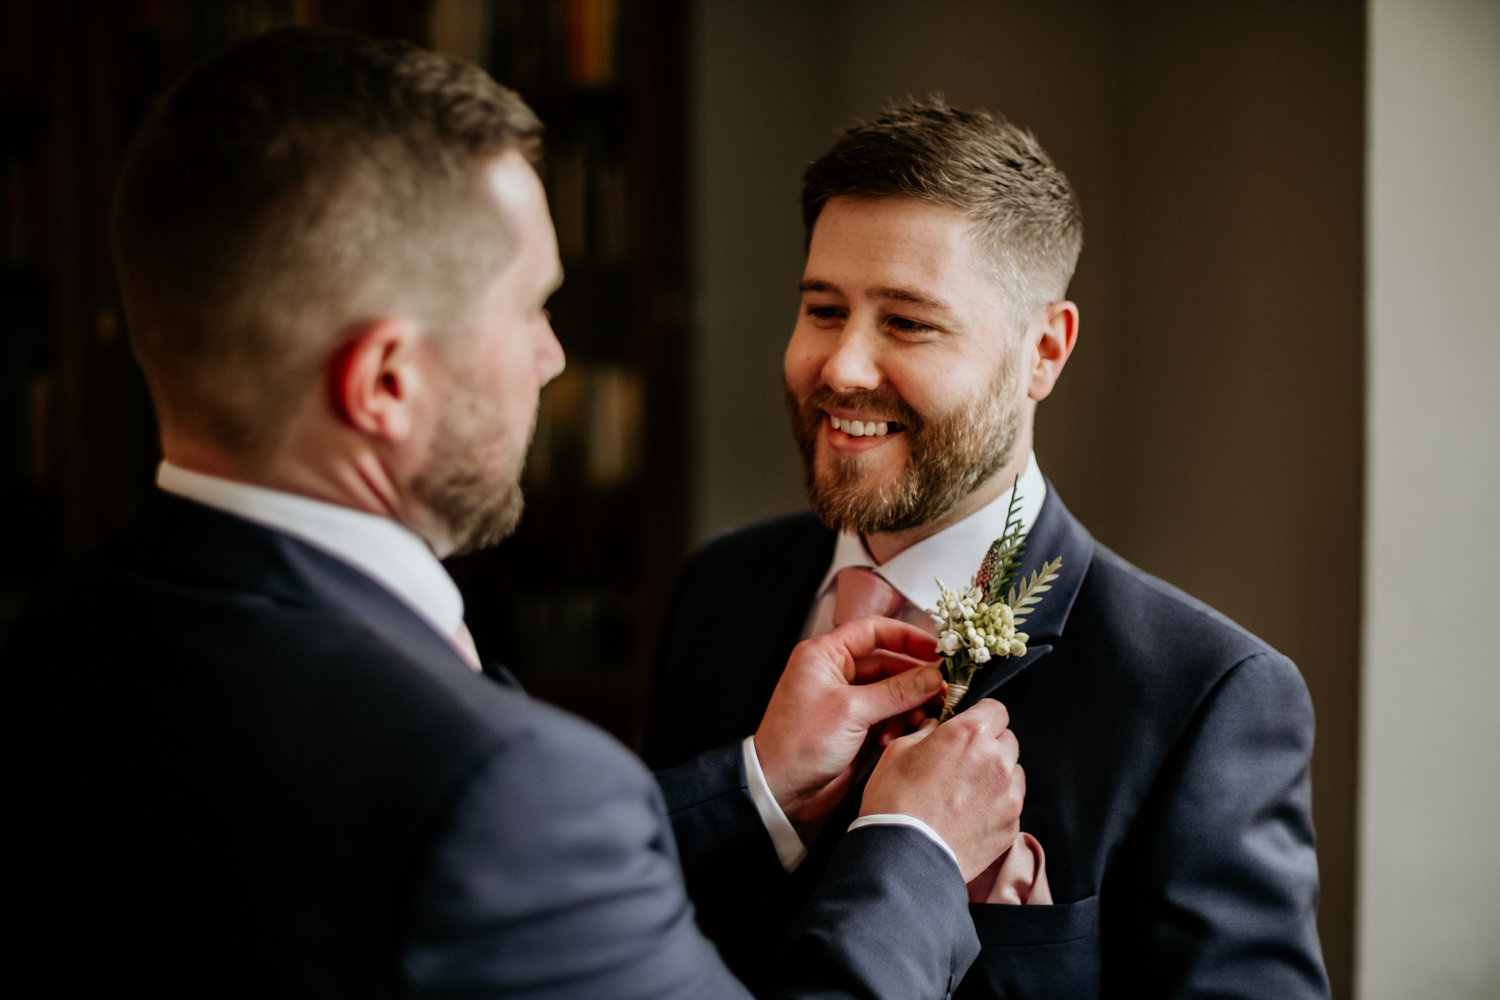 groom getting ready in the morning at Coombe Lodge Blagdon wedding venue